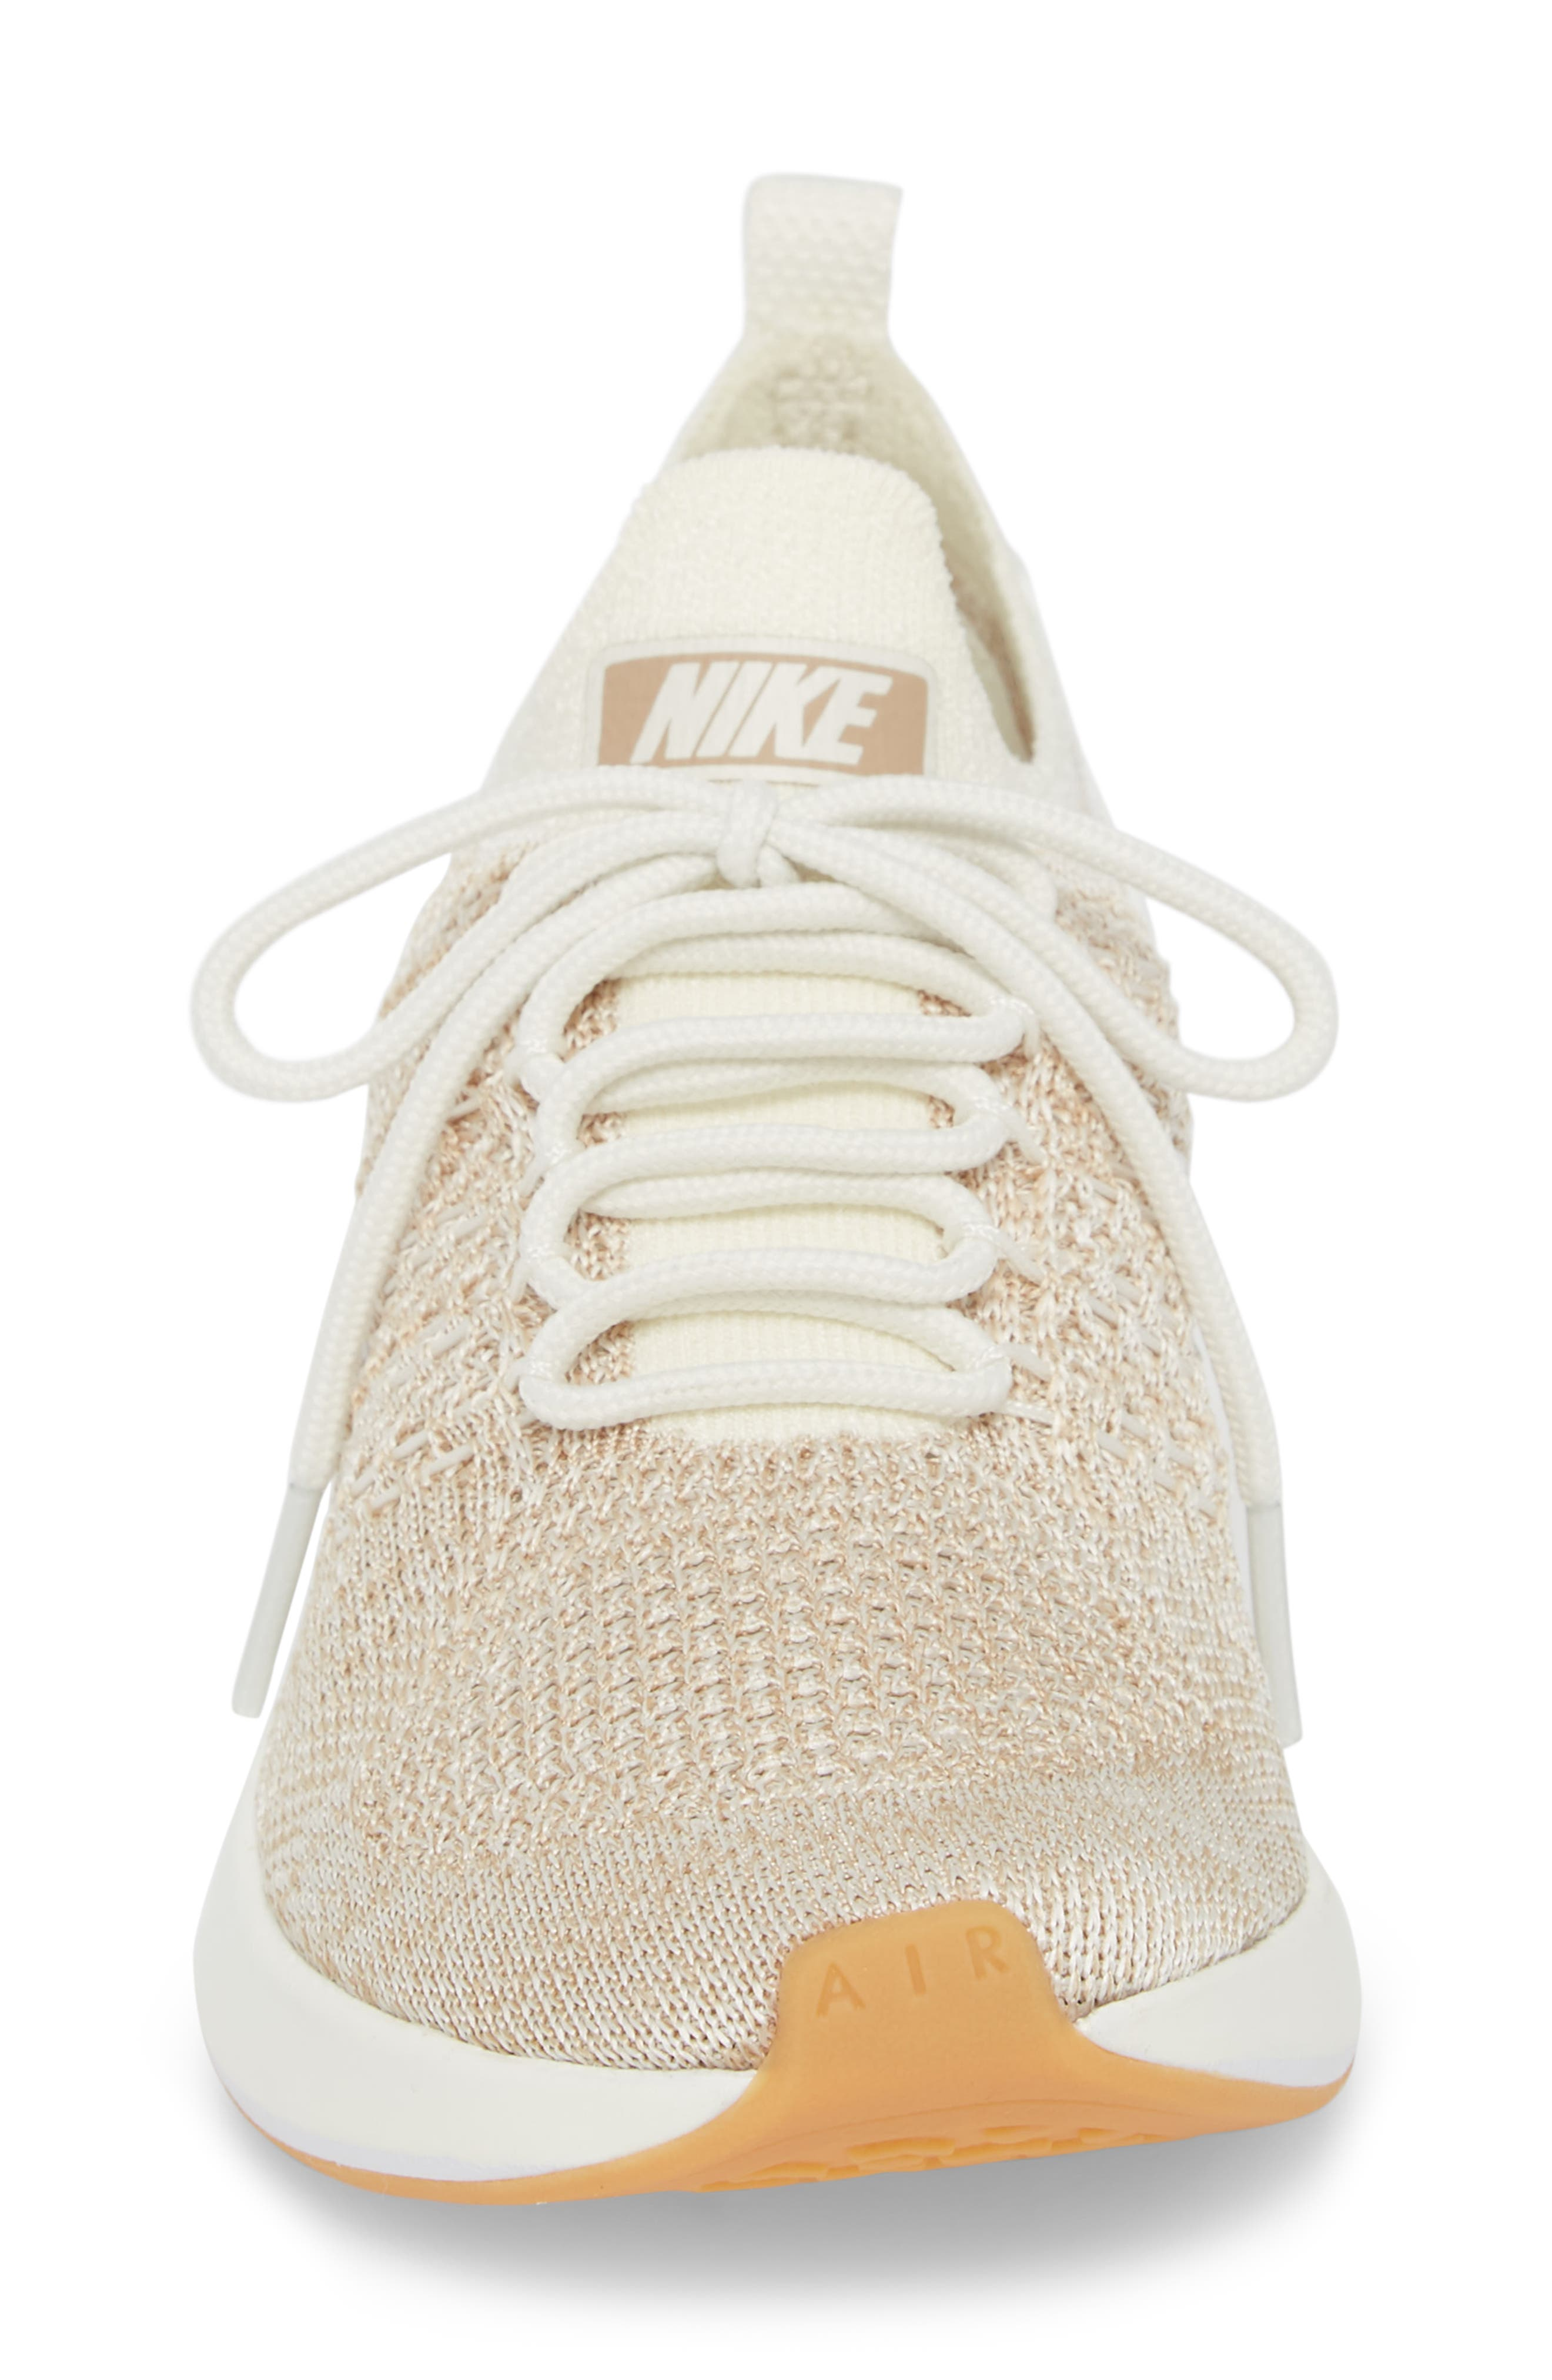 Air Zoom Mariah Flyknit Racer Sneaker,                             Alternate thumbnail 4, color,                             SAIL/ WHITE/ SAND